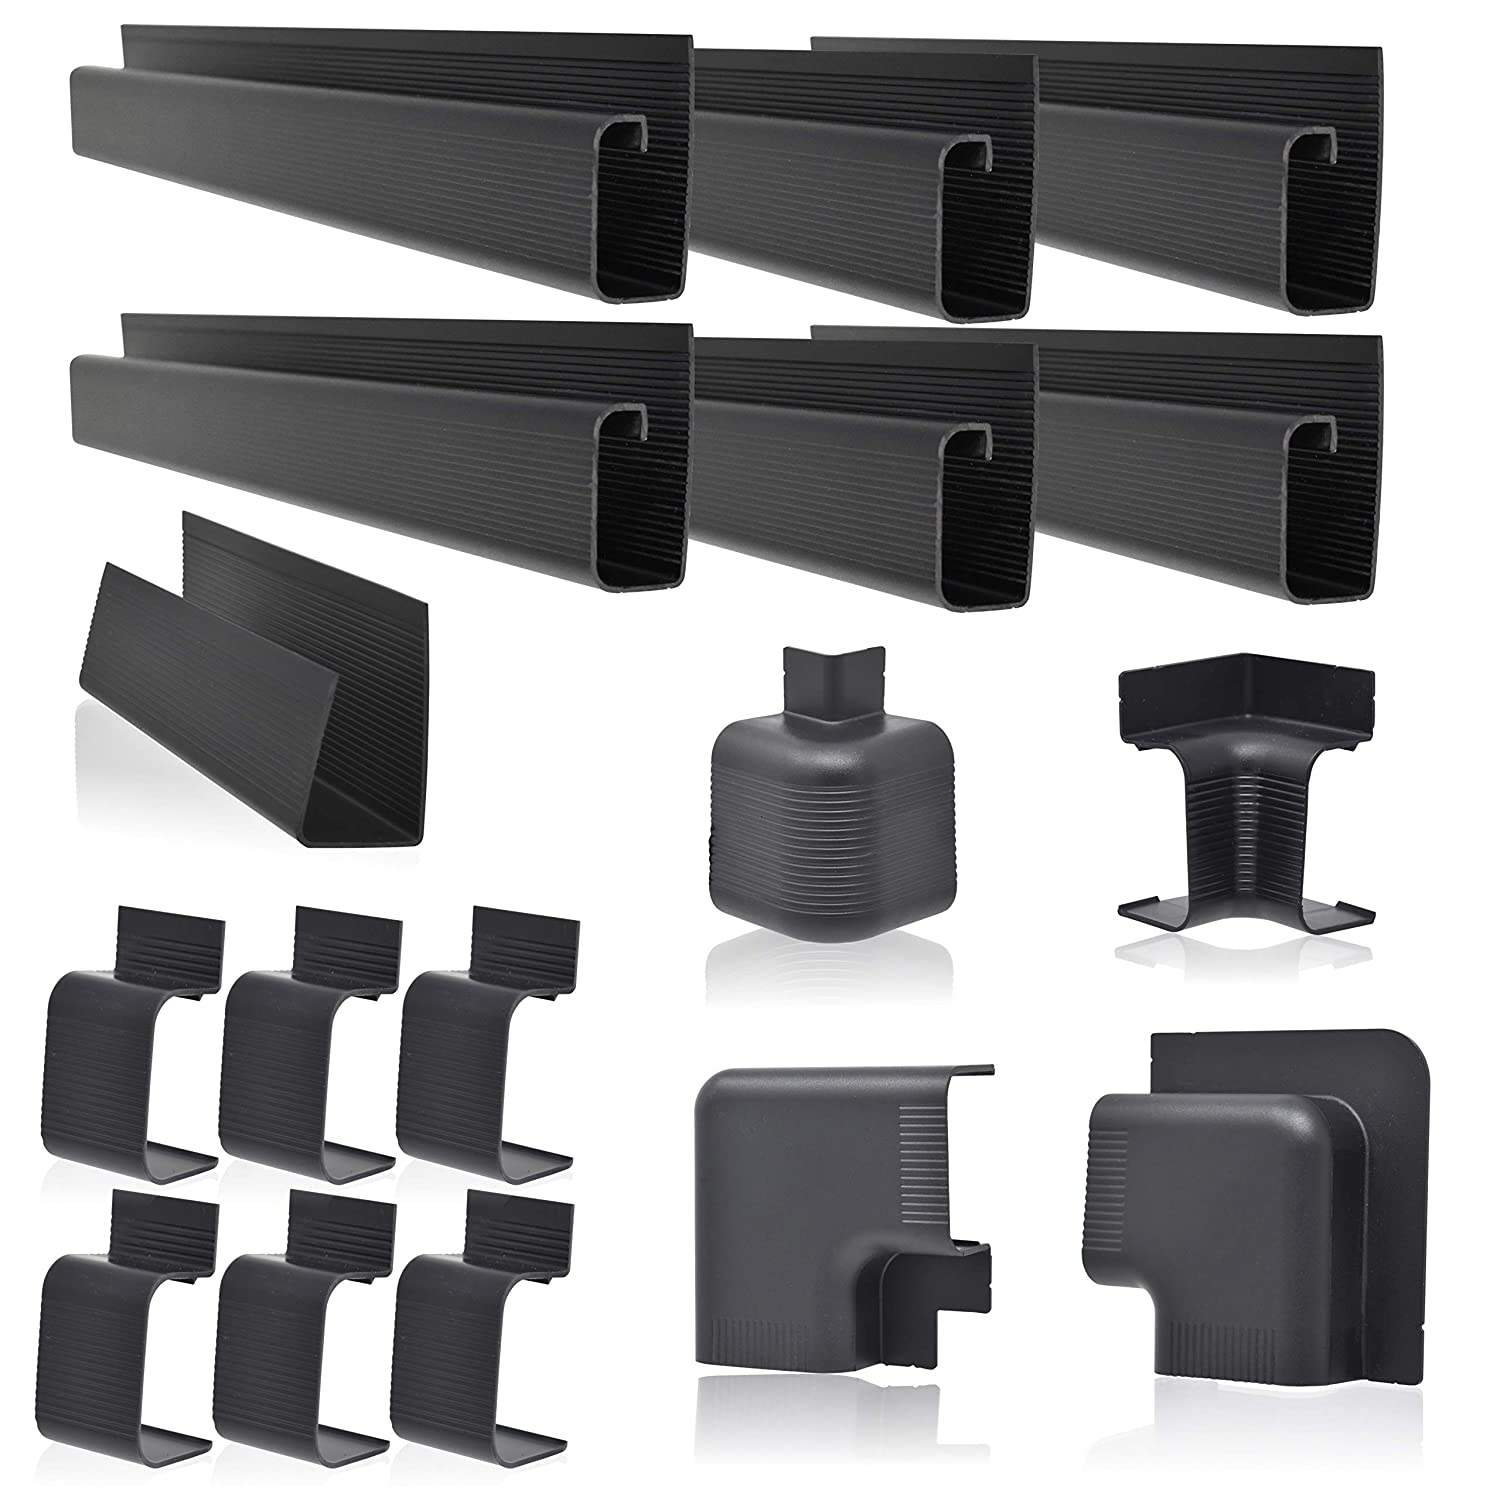 """J Channel Cable Raceway System, 100"""" Total, Cable Management Solution for Desk, Office, Kitchen or Workshop, Includes Couplers to Cover Gaps and Solution for Power Blocks and Outlet Strips"""